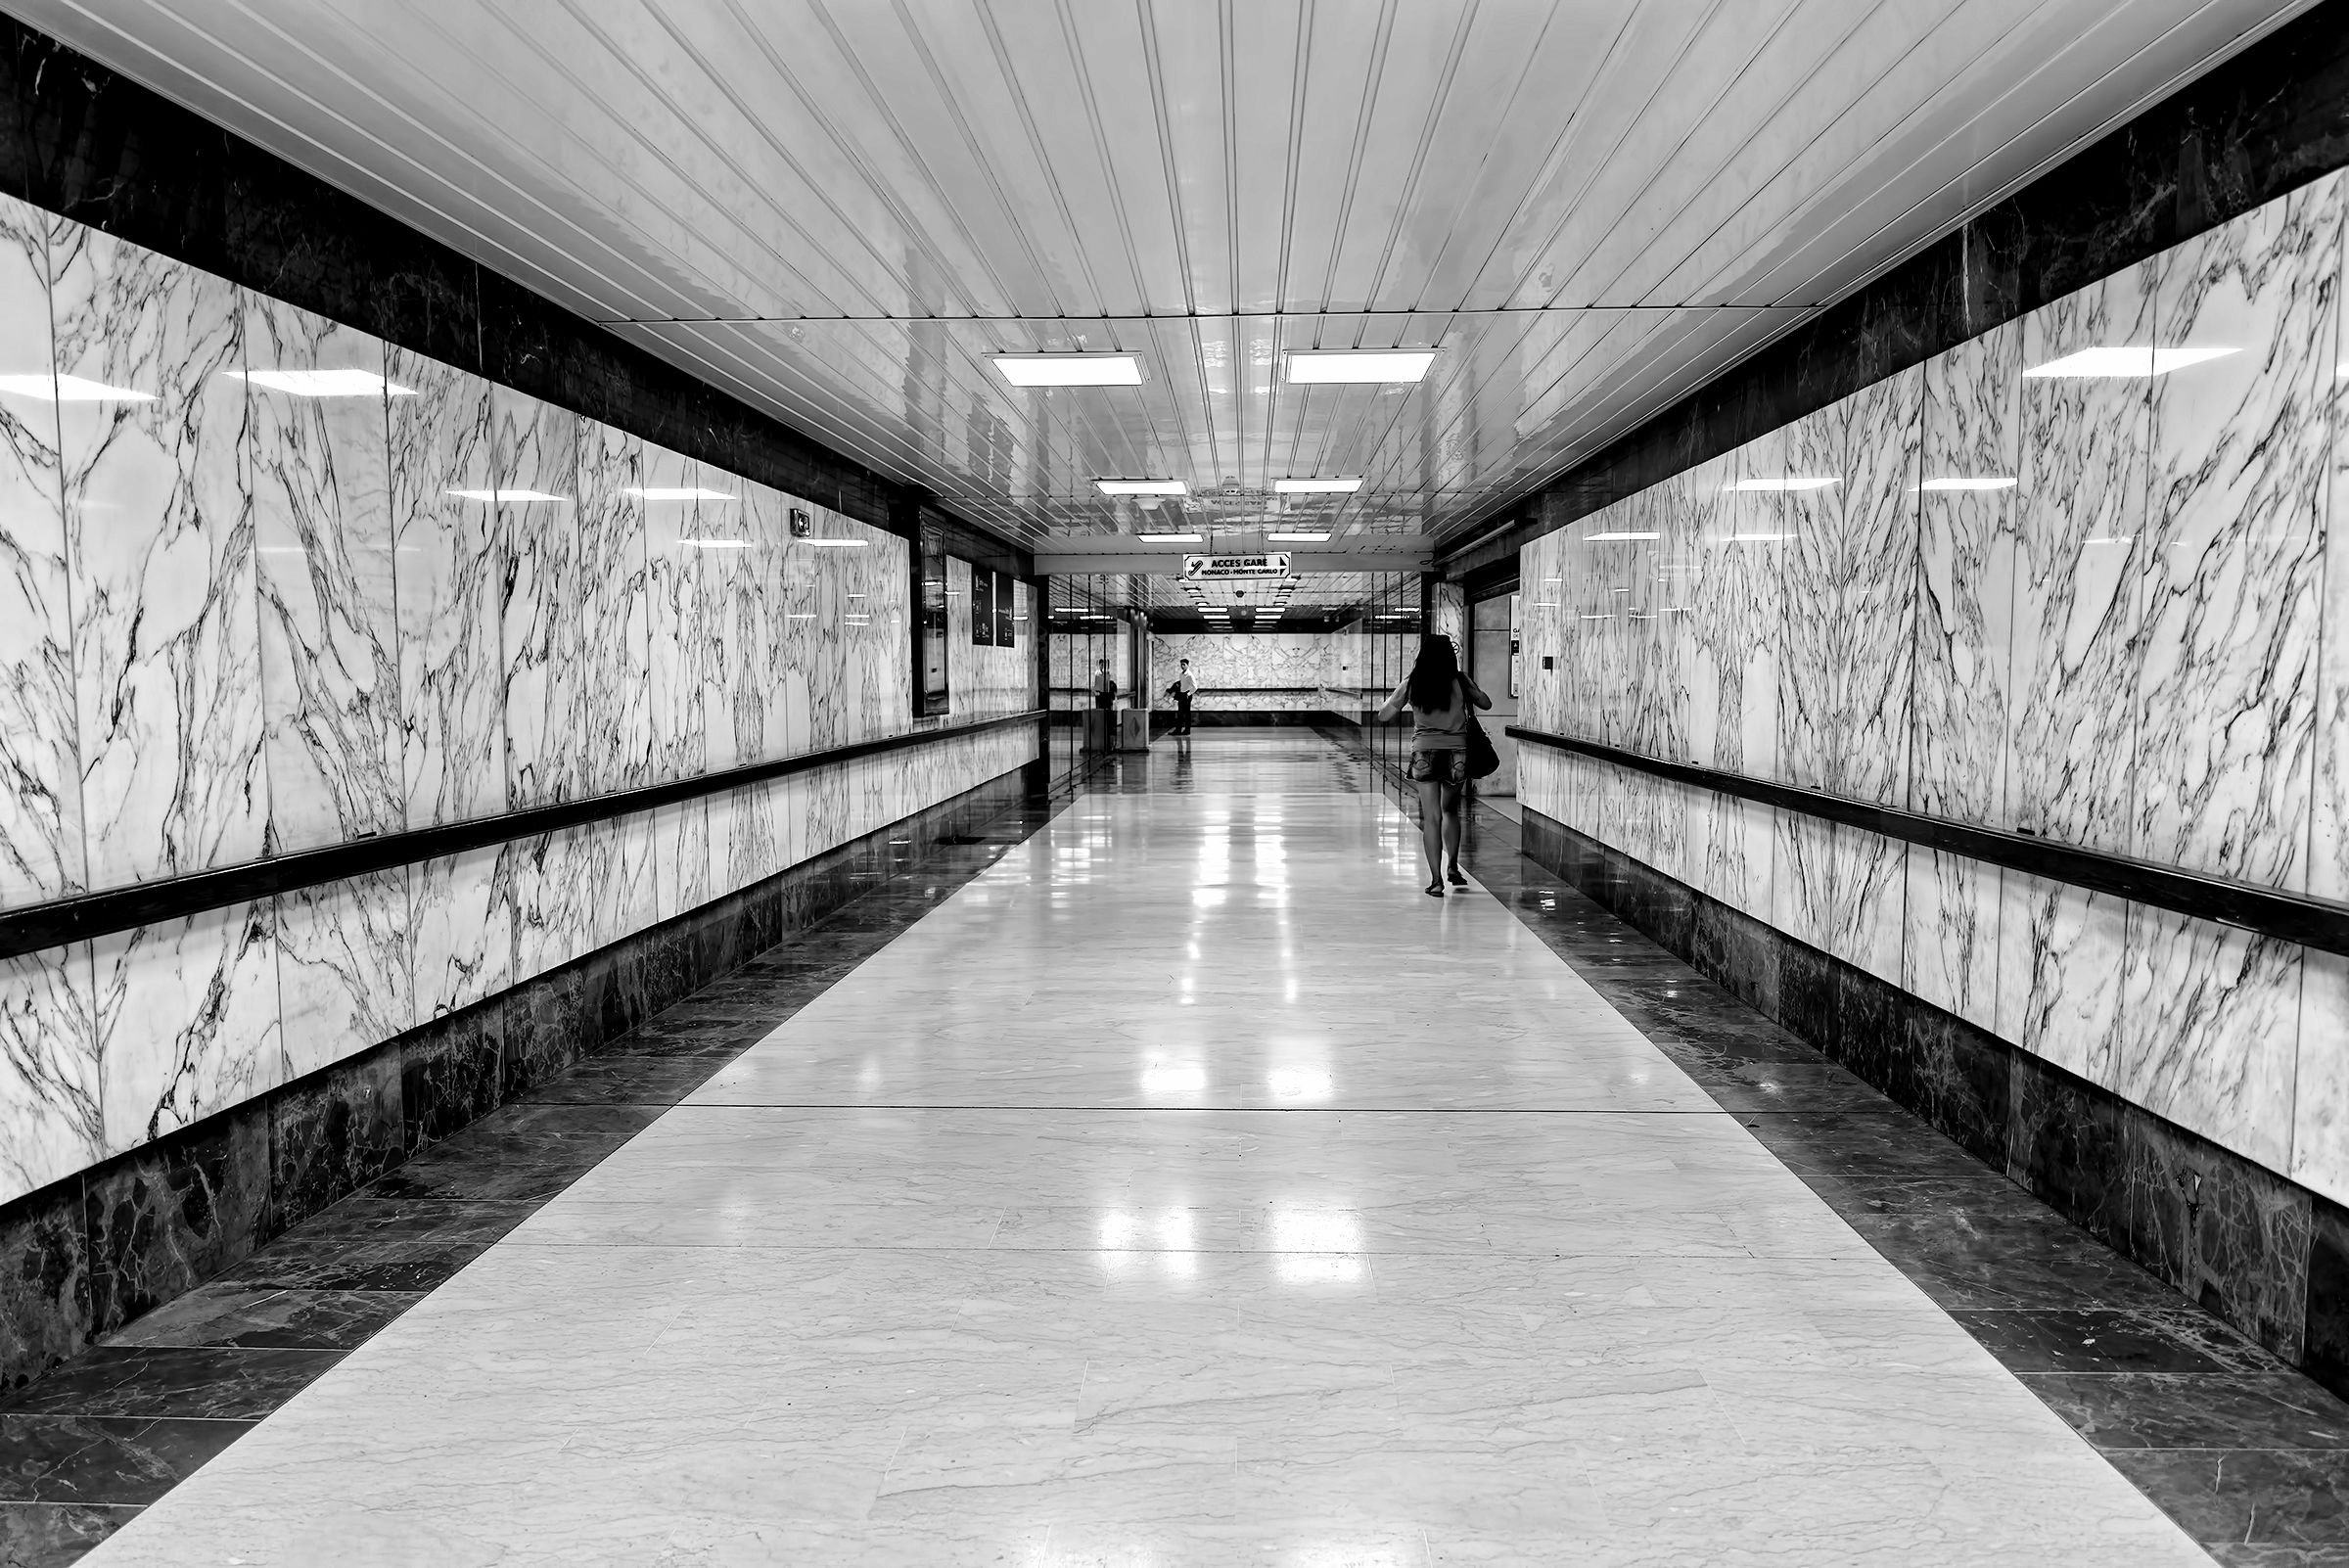 In the sub-passage of the Monte-Carlo station...